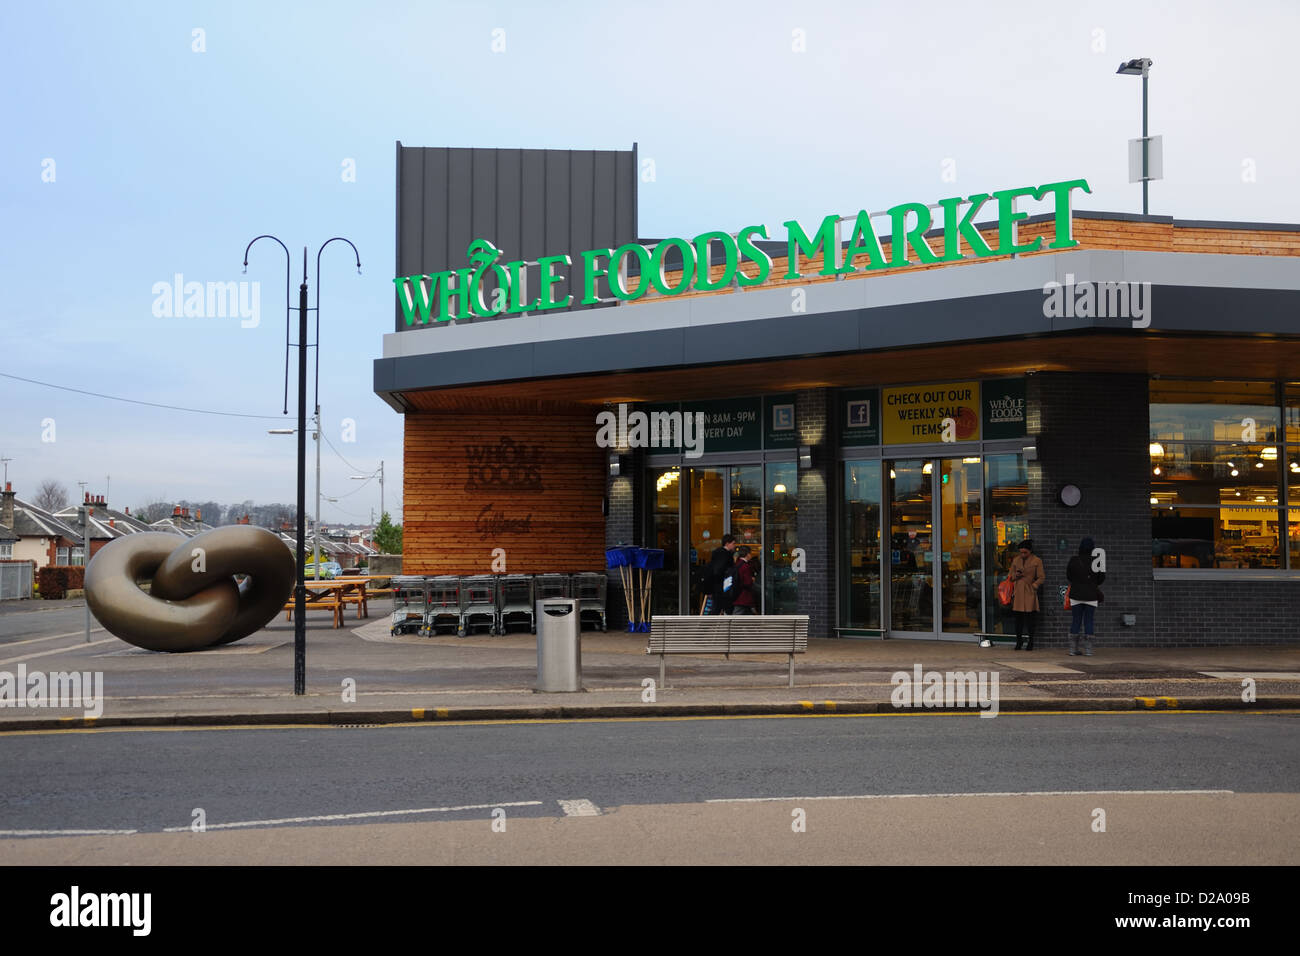 Whole Foods Market store in Glasgow. - Stock Image